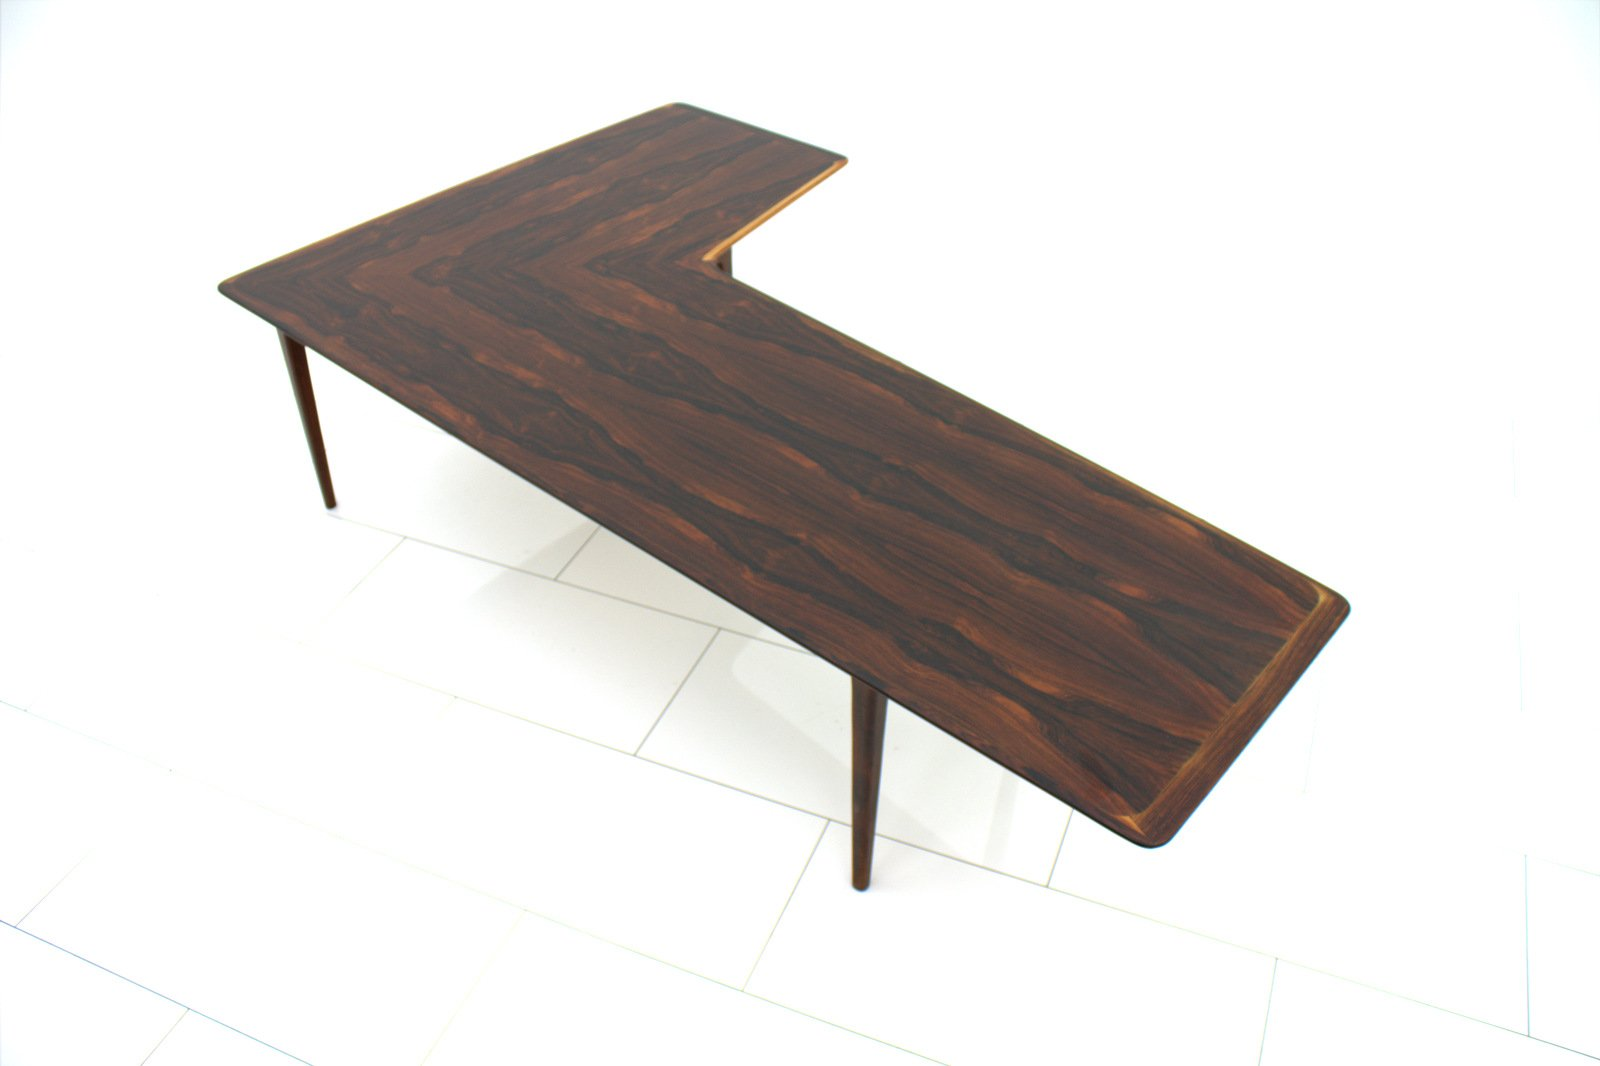 L Shaped Rosewood Coffee Table, 1960s